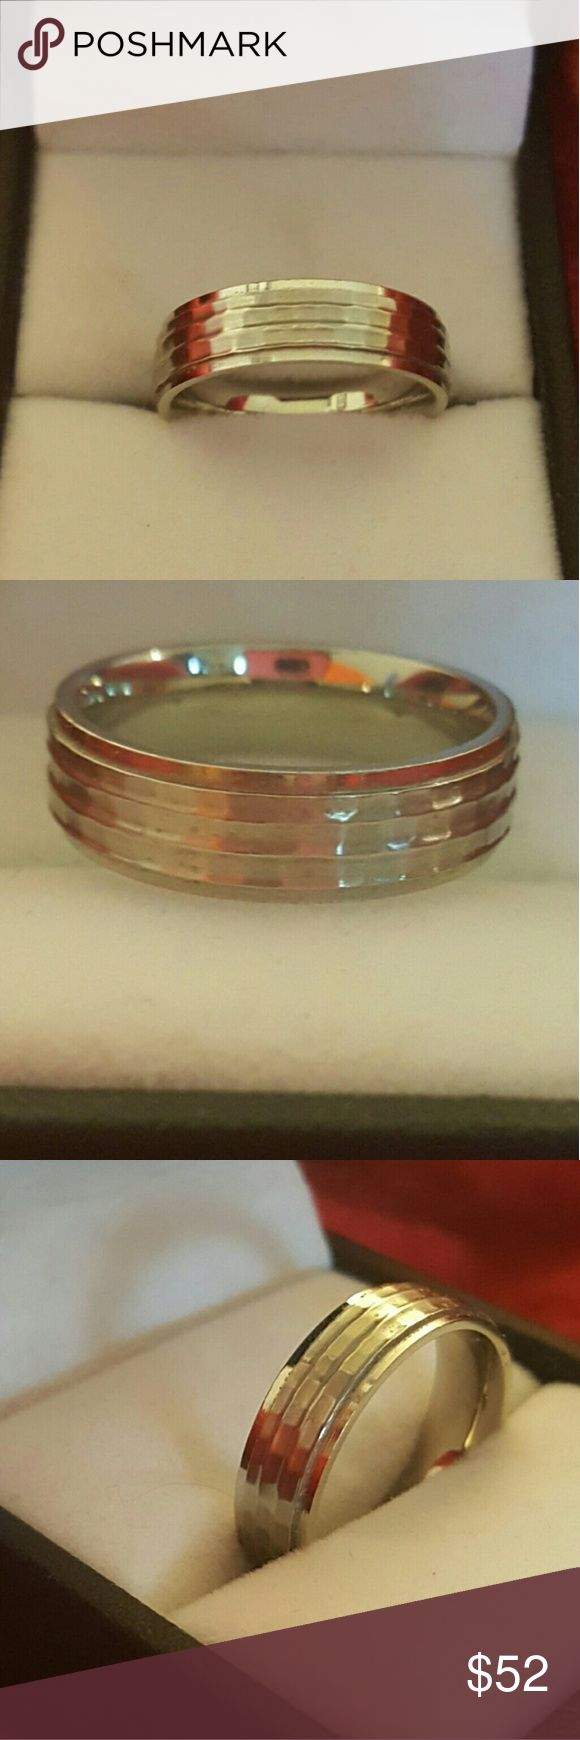 SPRING SALE STERLING SILVER WEDDING BAND VERY BEAUTIFUL WEDDING BAND STERLING SILVER 925 CLEANING OUT MY JEWELRY BOX HAD FOR ABOUT THREE YEARS IN GOOD CONDITION NO CRATCHES BOUGHT AT KAY JEWELRY  (SIZE 8) Kay Jewelers Jewelry Rings